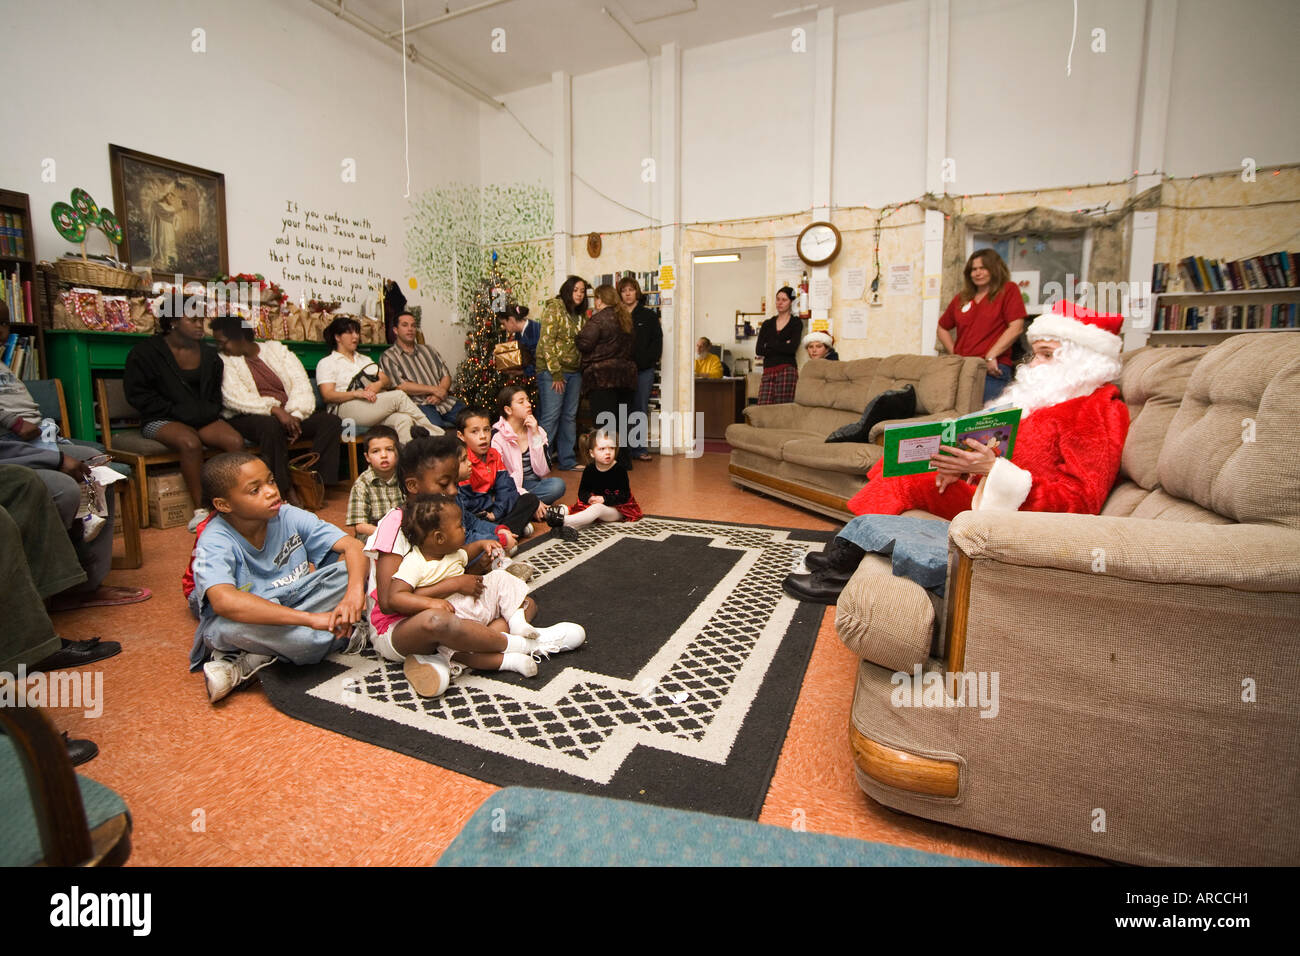 Antike Sofas For Kids Santa Claus With Books Stock Photos Santa Claus With Books Stock